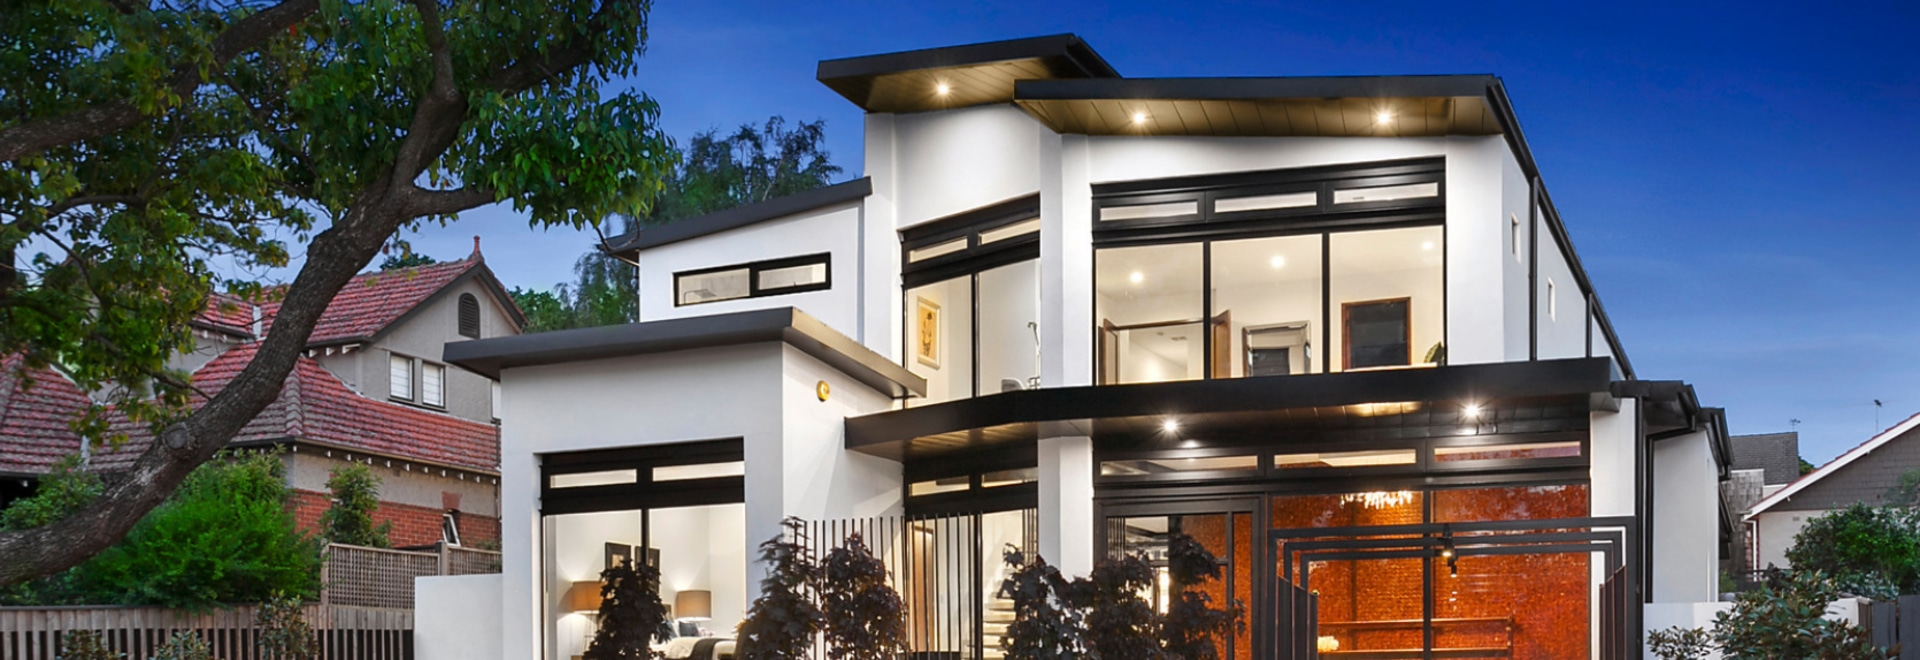 What Does A Luxury Prefab House Cost Melbourne Vic 3004 - Modular-houses-made-of-prefabs